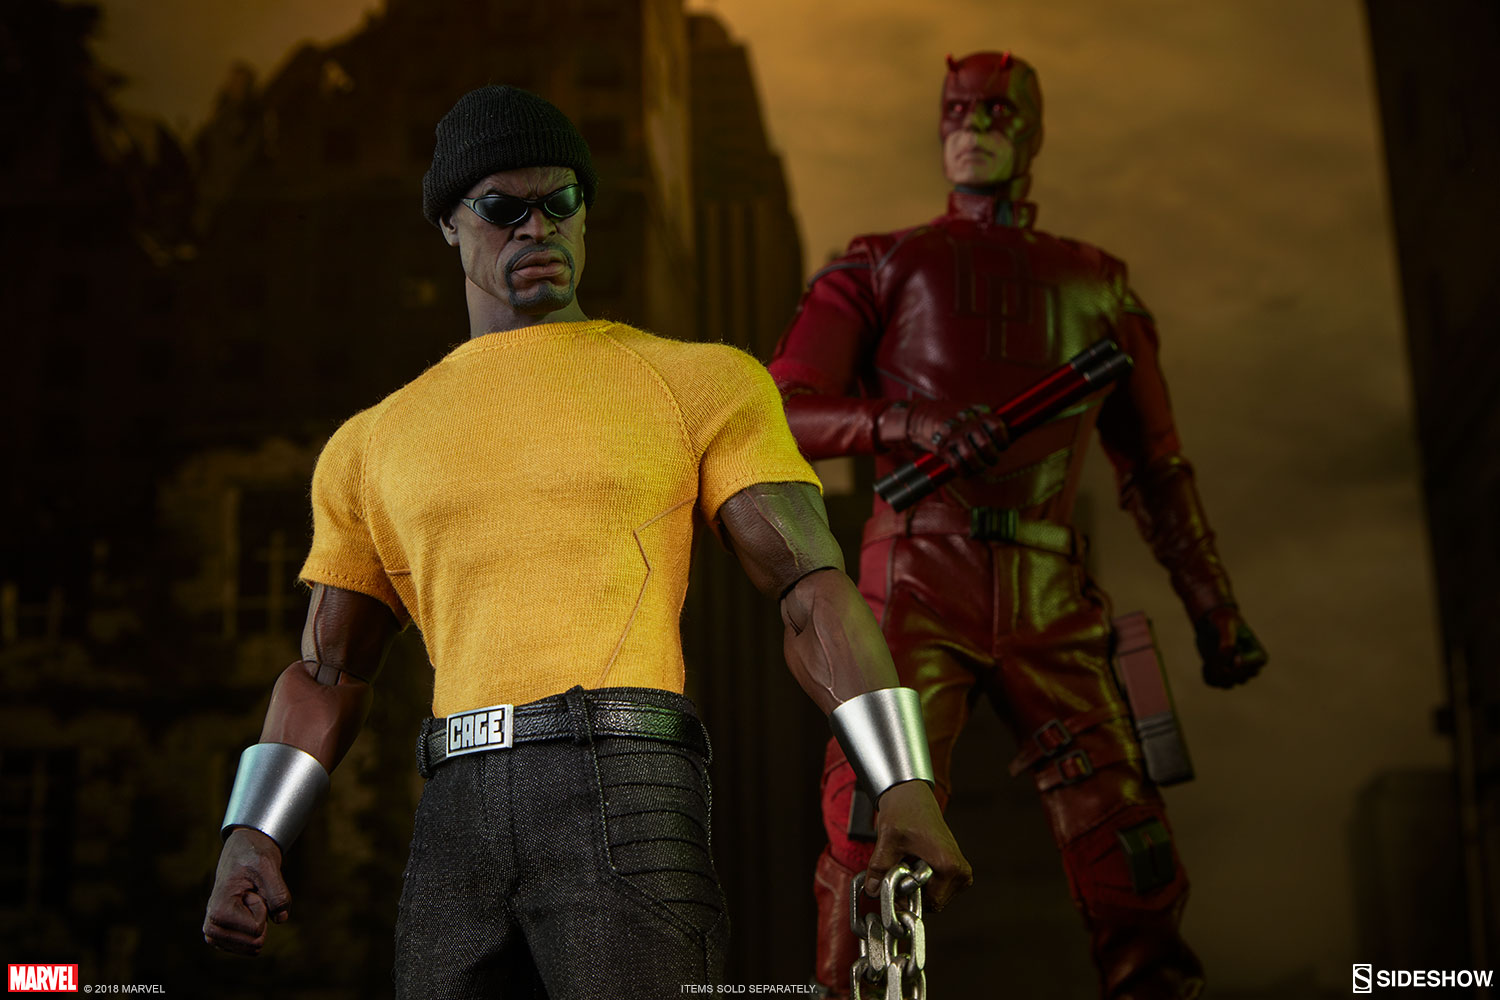 Marvel Luke Cage Sixth Scale Figure by Sideshow Collectibles         Luke Cage Sixth Scale Figure